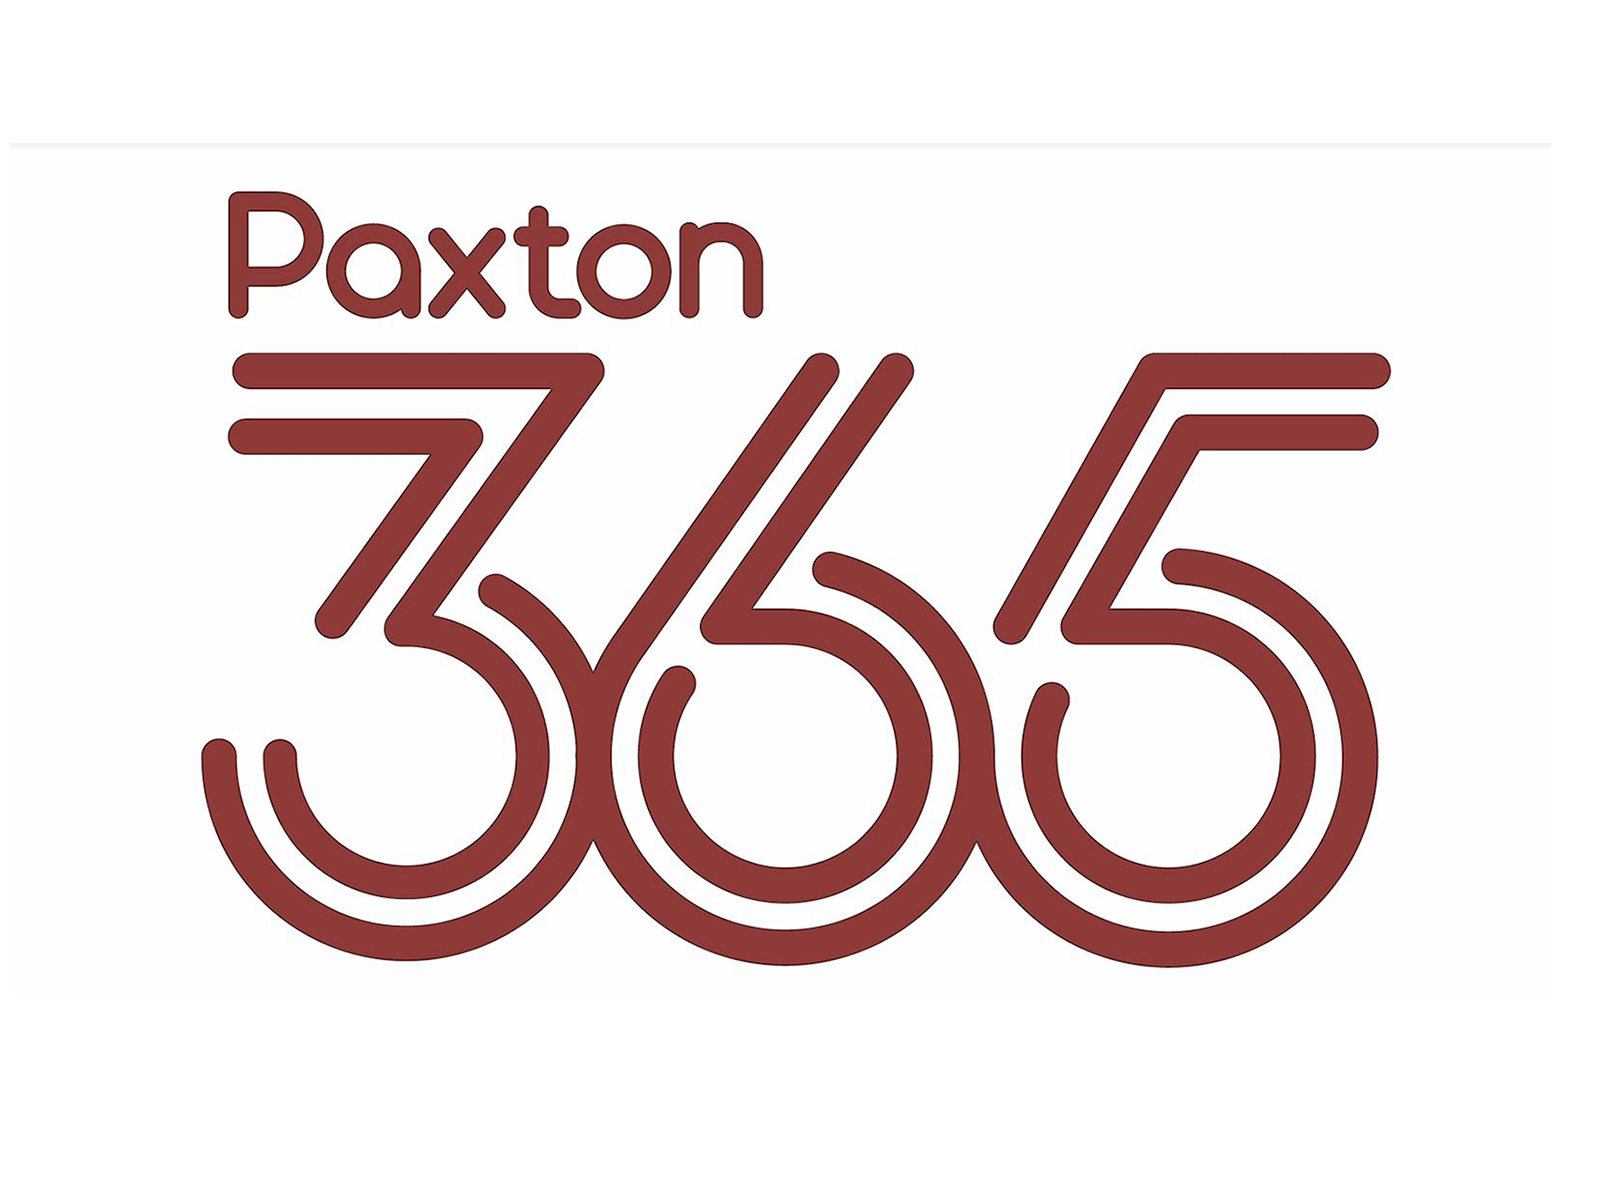 Take a tour of Paxton 365 Apartments from the comfort of your very own home. Here, you can create the lifestyle that you have been waiting for. Contact us today!